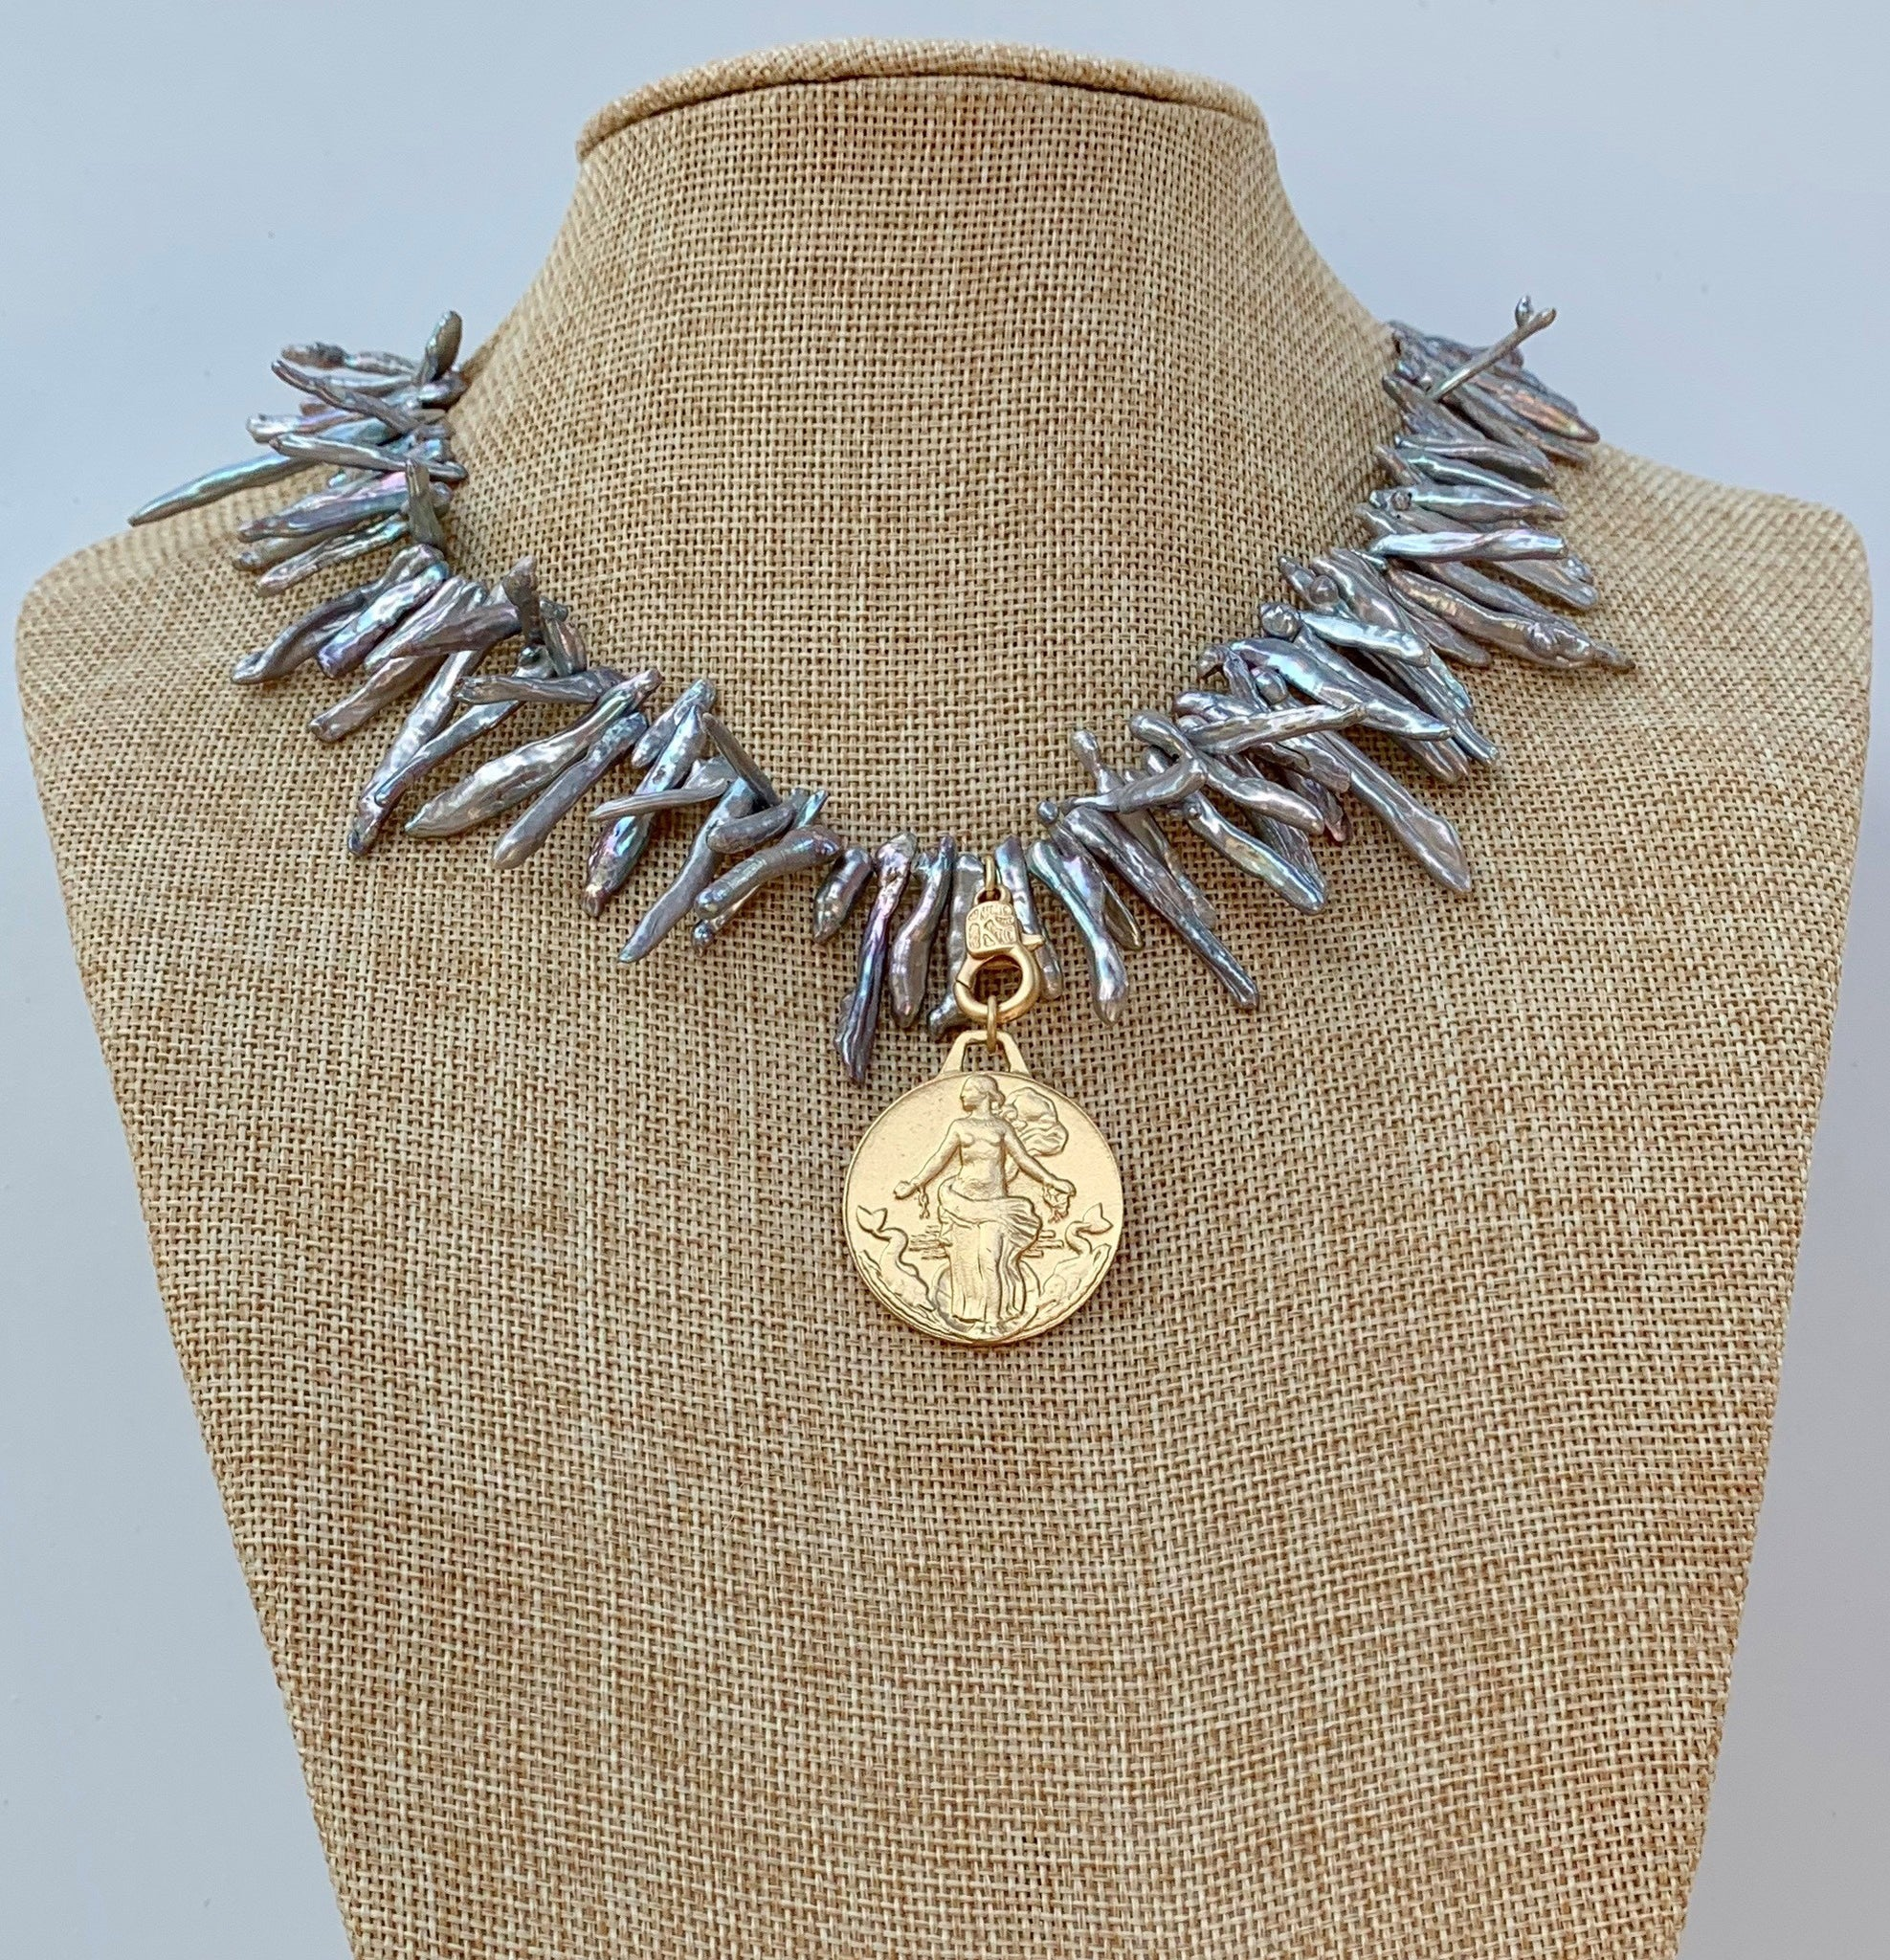 Covet - Covet, Necklace - Unique hand-crafted jewelry designs created out of the Earth's natural stones & elements